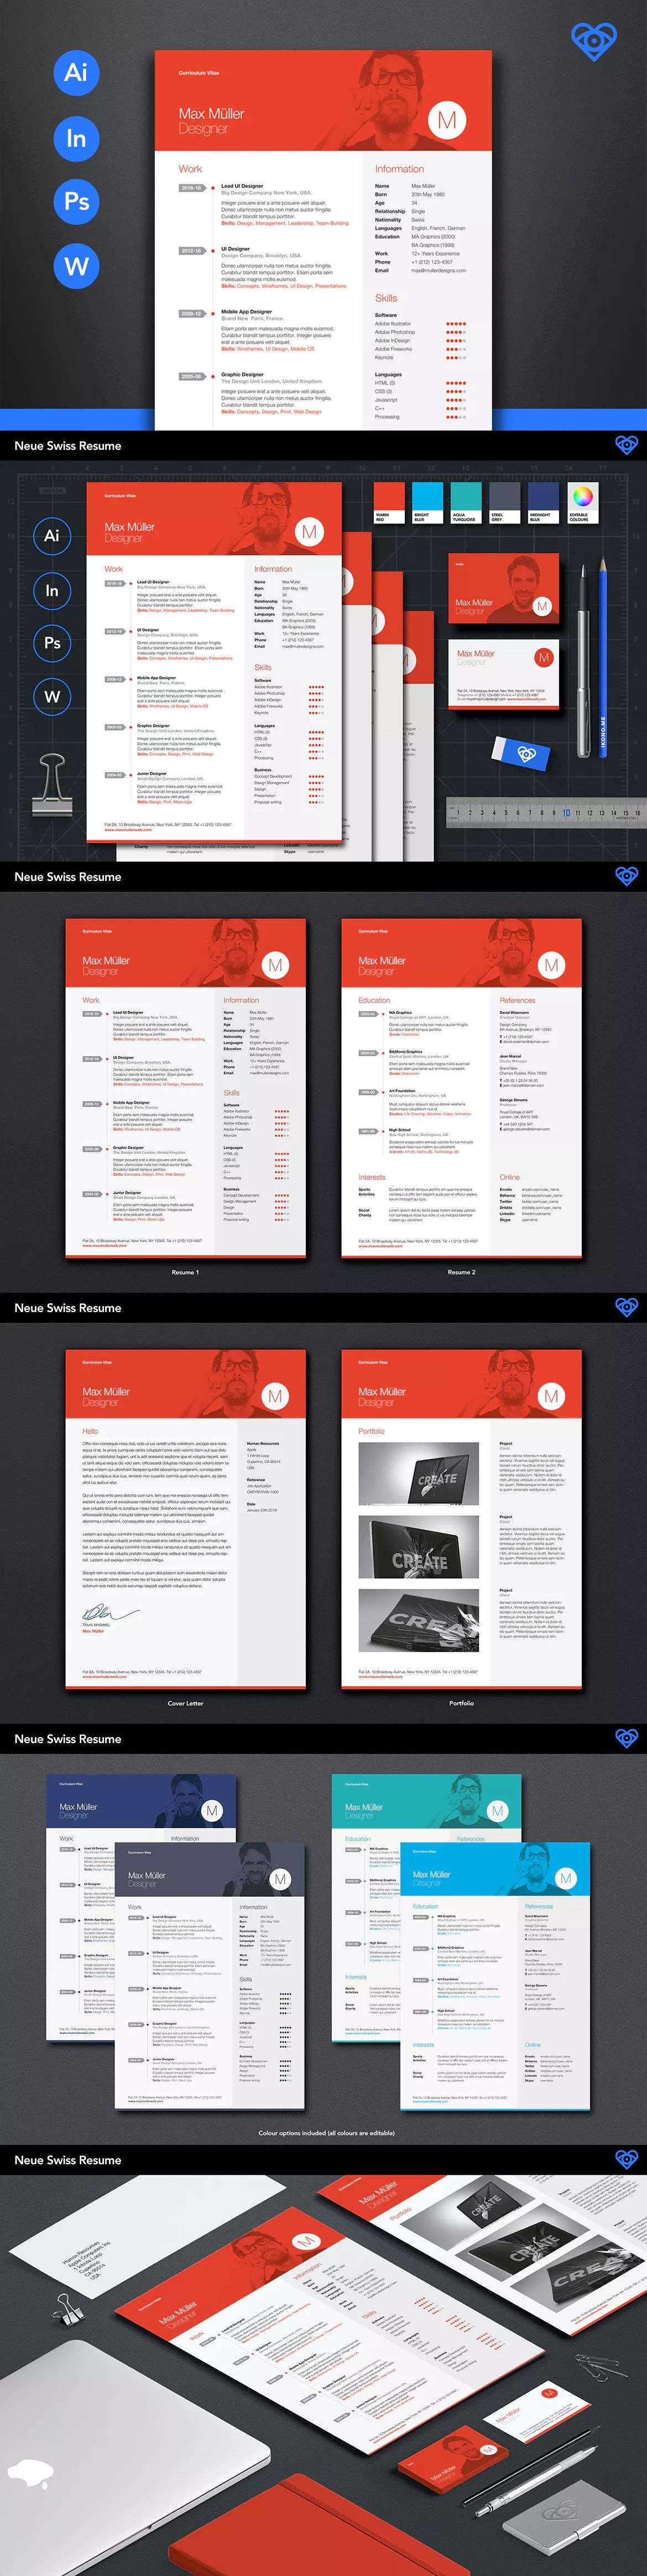 Neue swiss resume cv template ai indd psd ms word resume neue swiss resume cv by ikonome on envato elements yelopaper Gallery